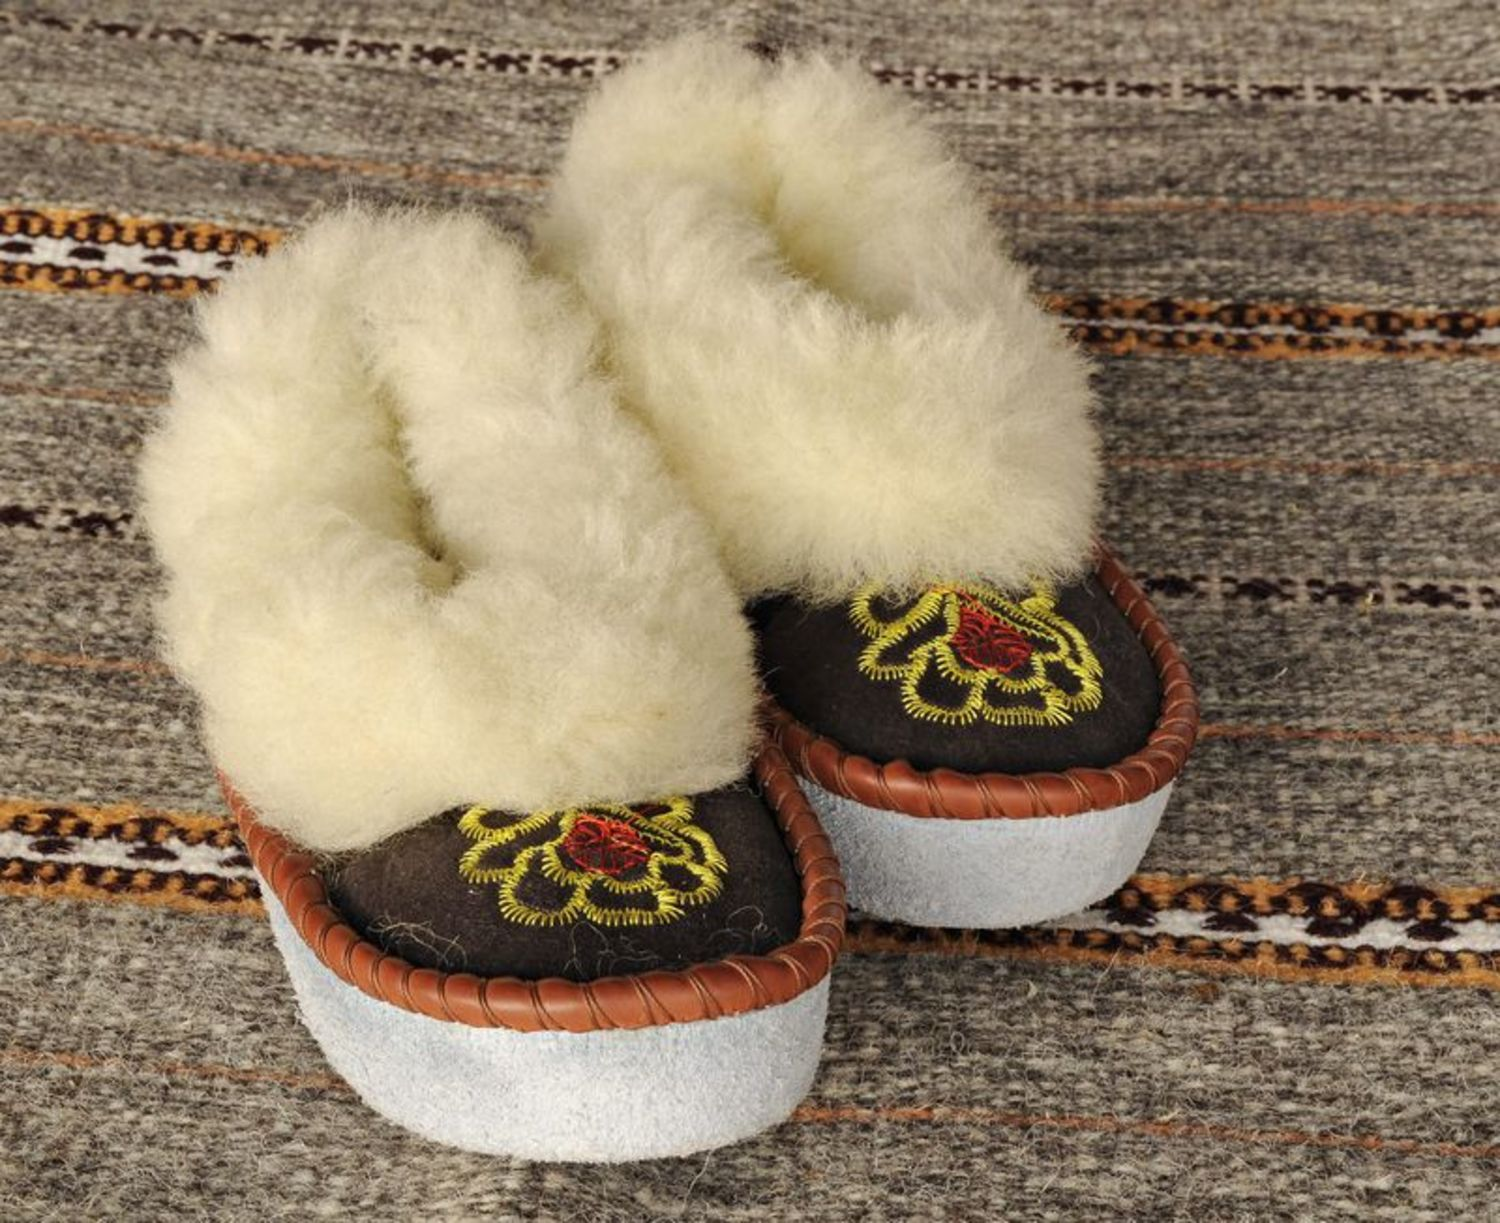 footwear Women's slippers made ​​of lambskin - MADEheart.com